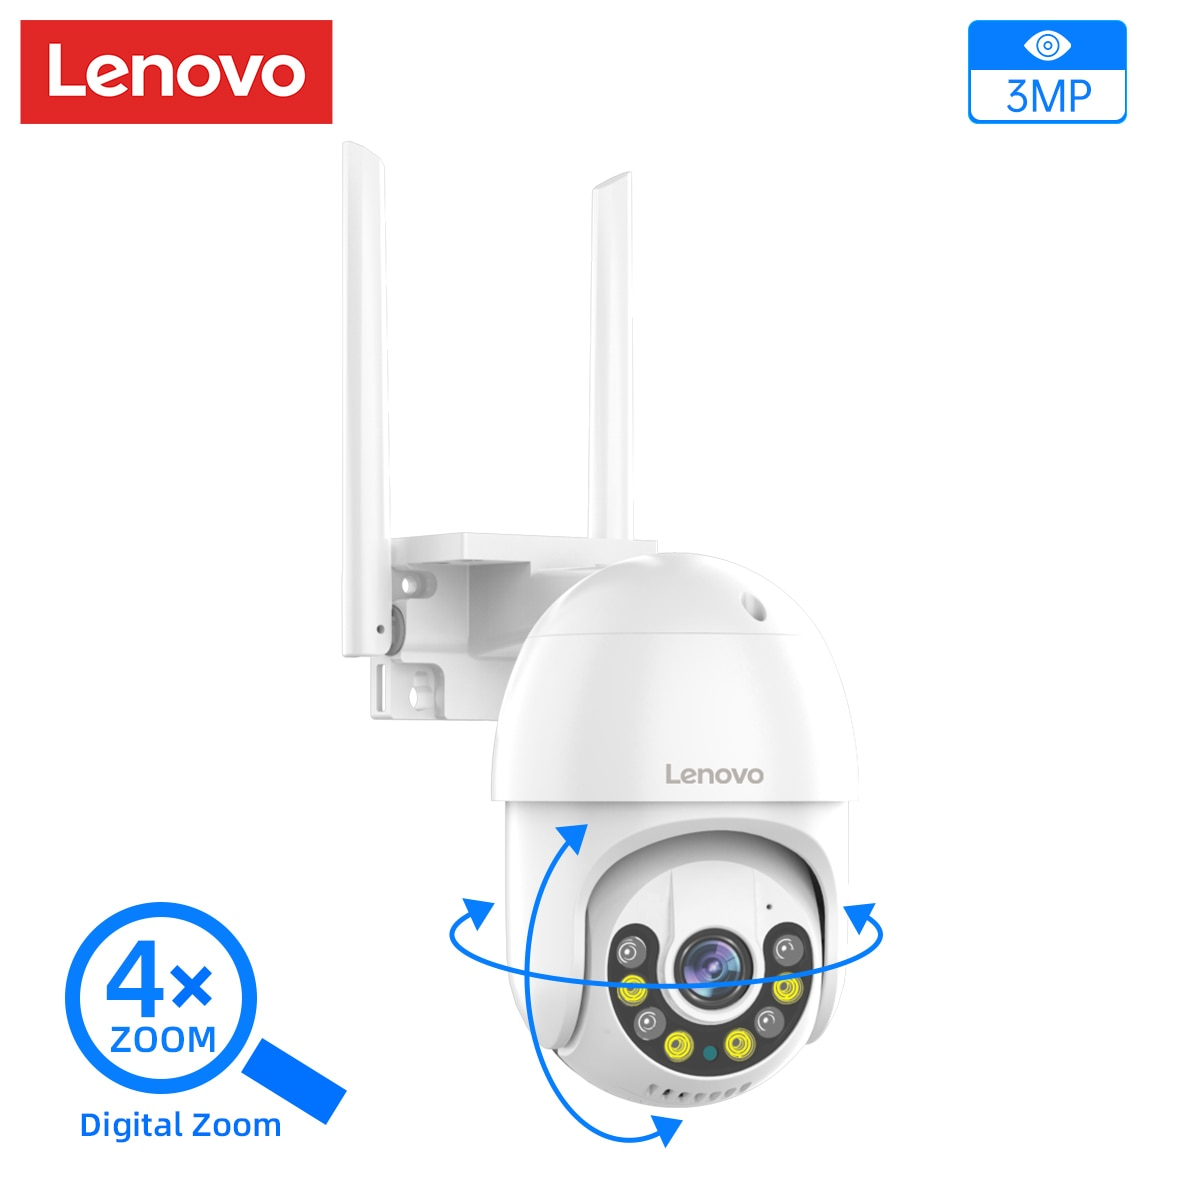 Lenovo 3MP Security Camera PTZ WIFI IP Camera Outdoor 4X Digital Zoom Night Full Color Wireless P2P Security CCTV Auto Tracking